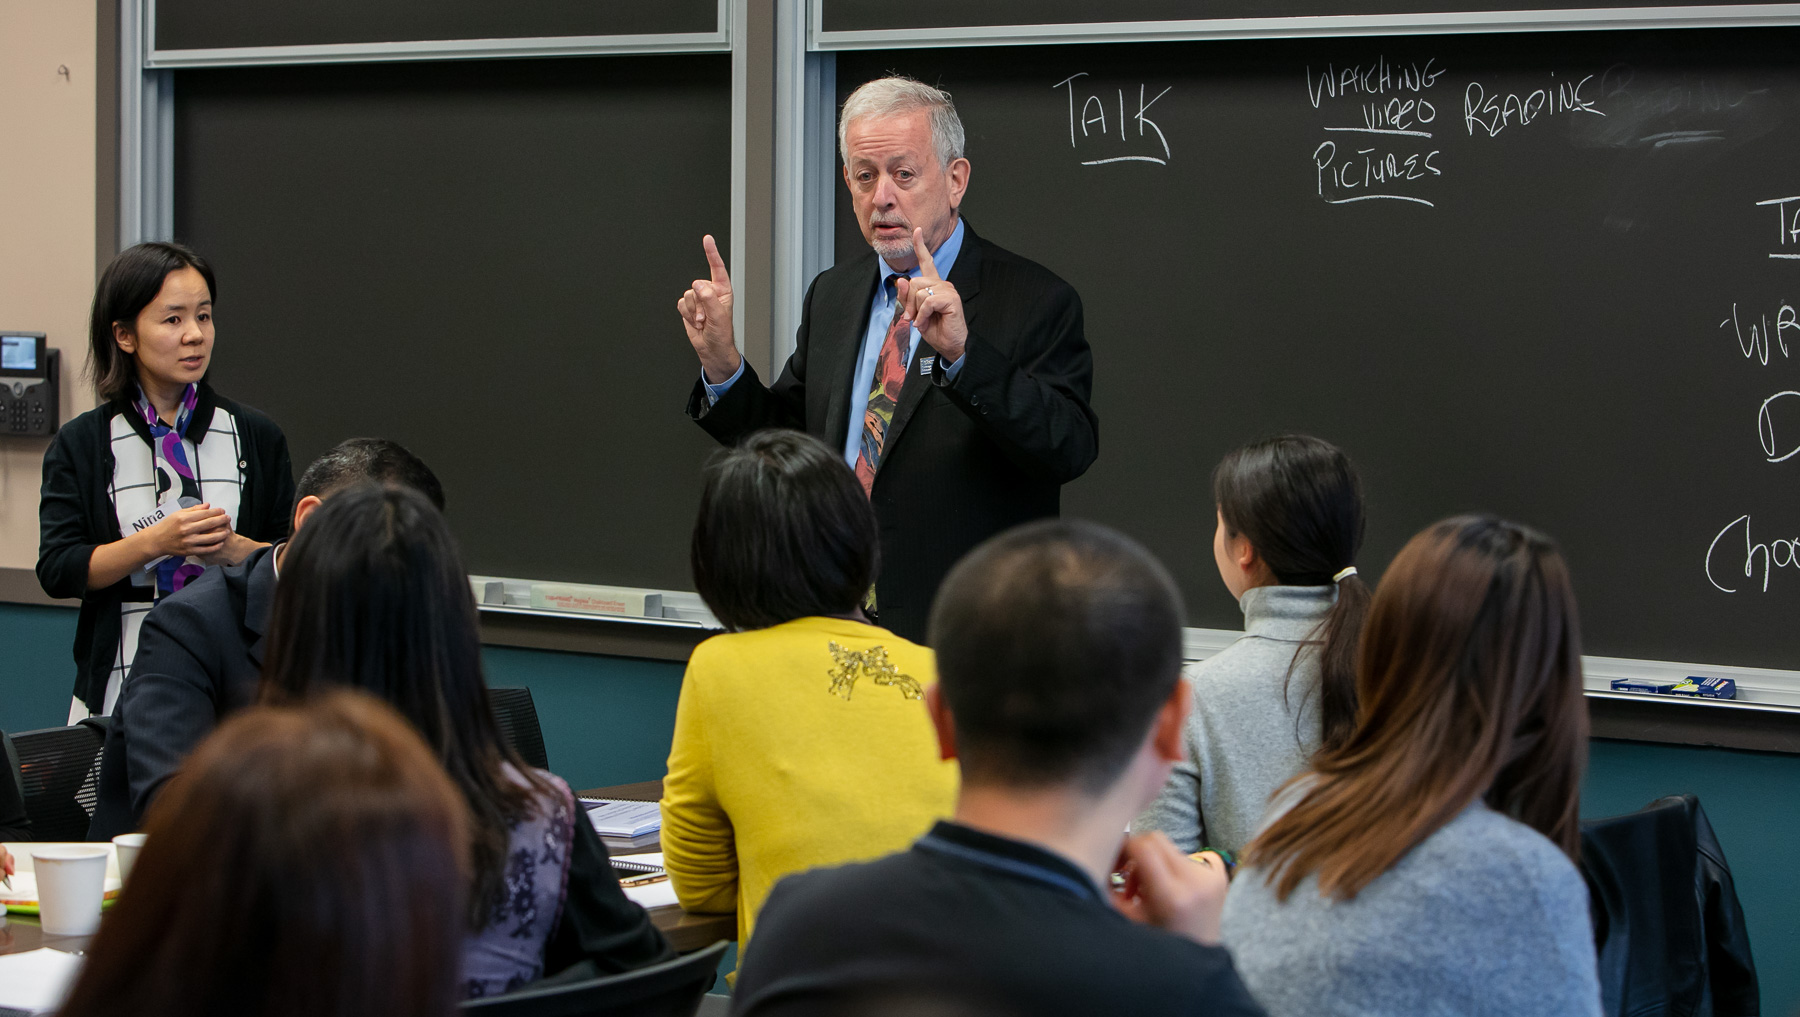 Paul Zionts demonstrates a learning technique that teachers from Beijing, China can implement during their own class lectures. (DePaul University/Randall Spriggs)